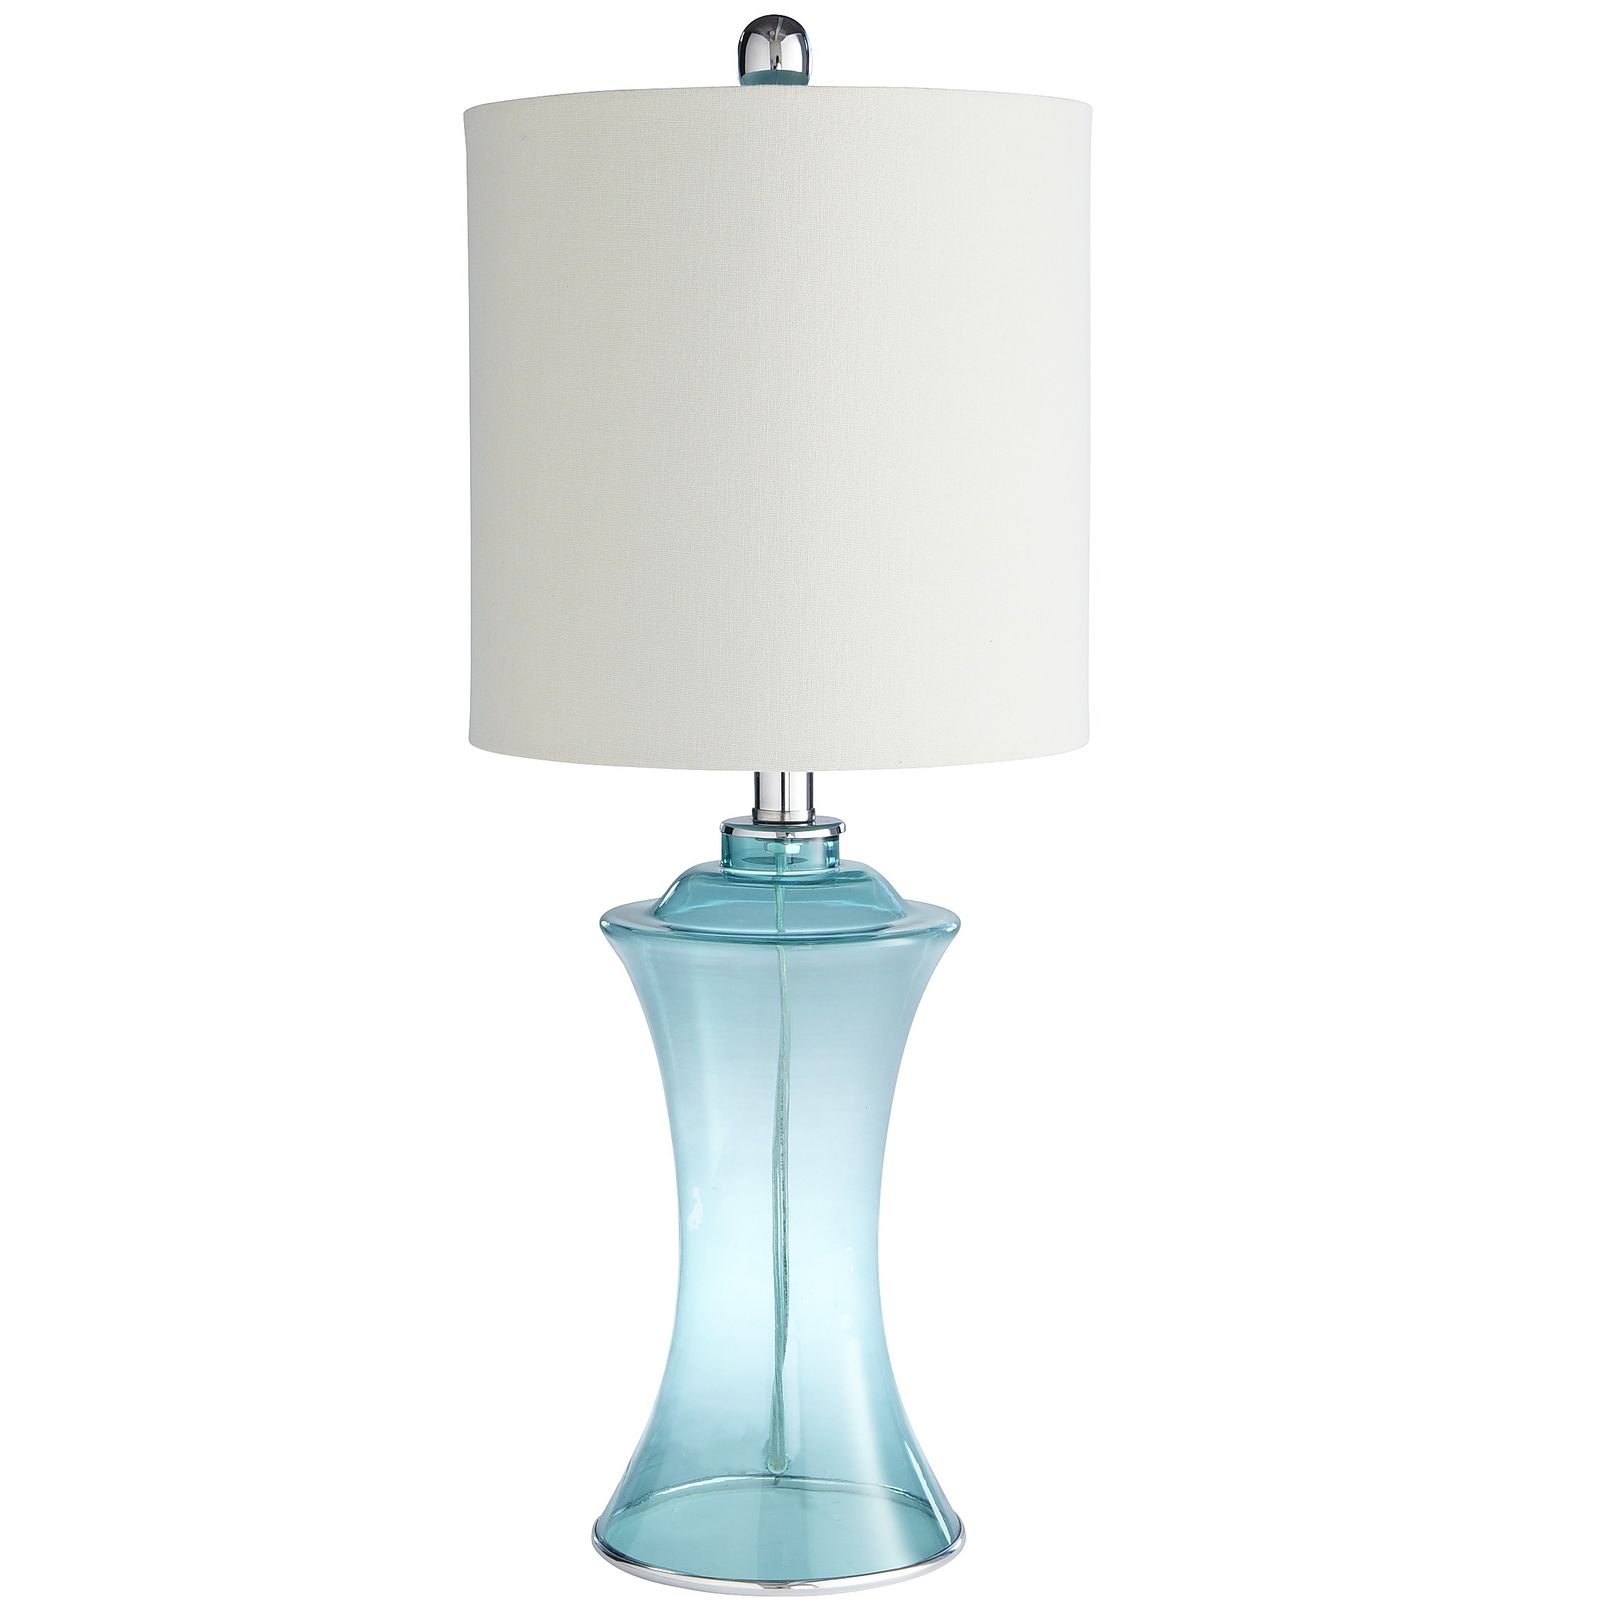 Sea Lamps: 10 Household Items For Every House